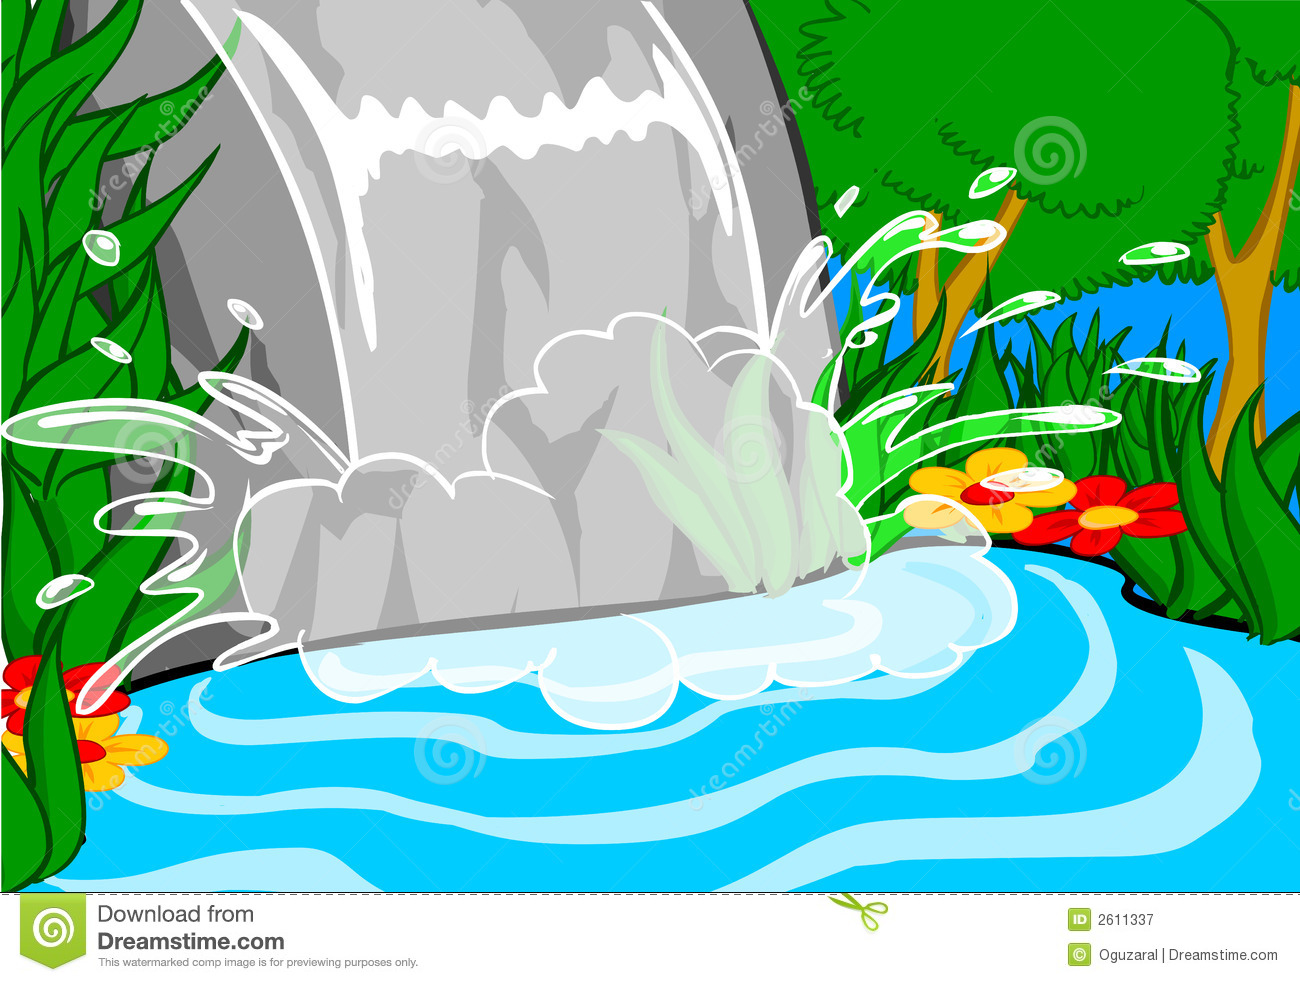 Waterfall clipart #12, Download drawings